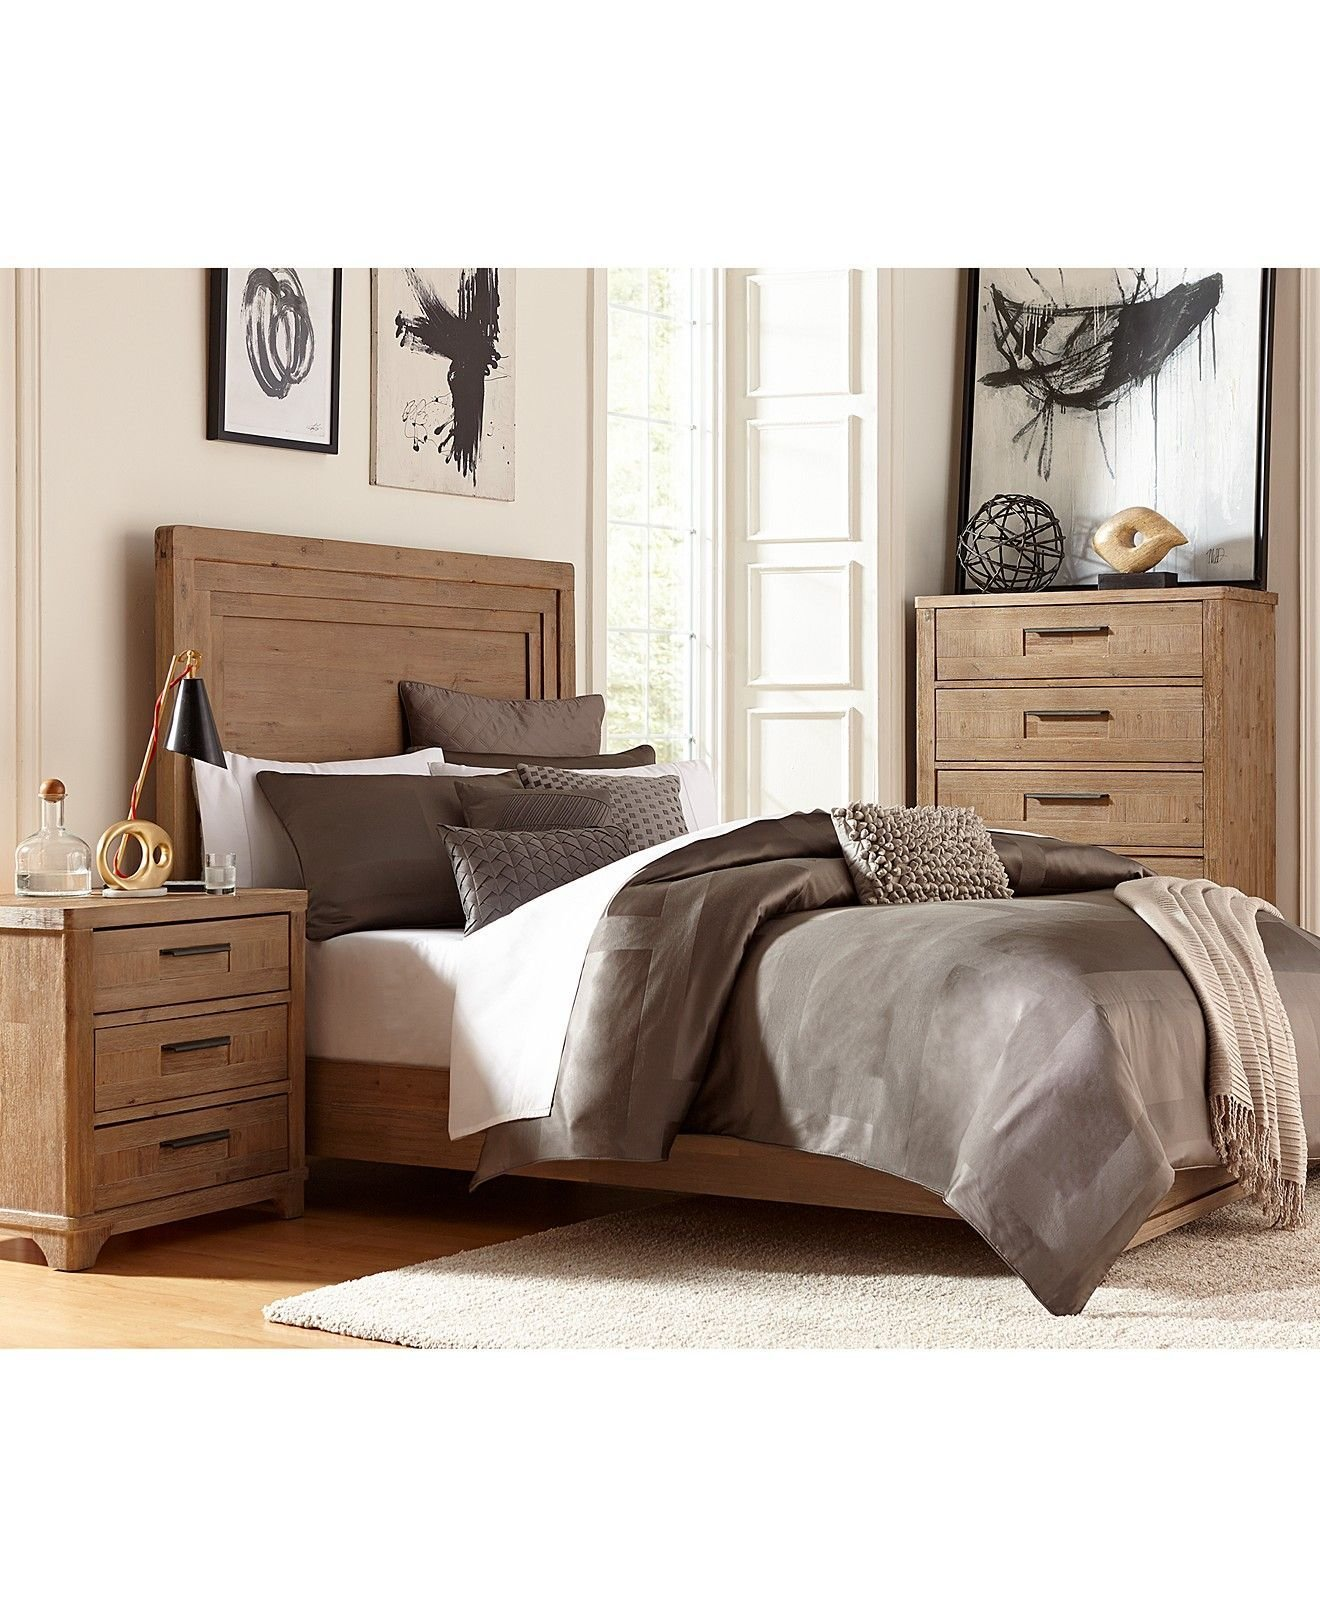 Best Summerside 3 Piece Queen Bedroom Furniture Set With Chest Shop All Bedroom Furniture Macy With Pictures